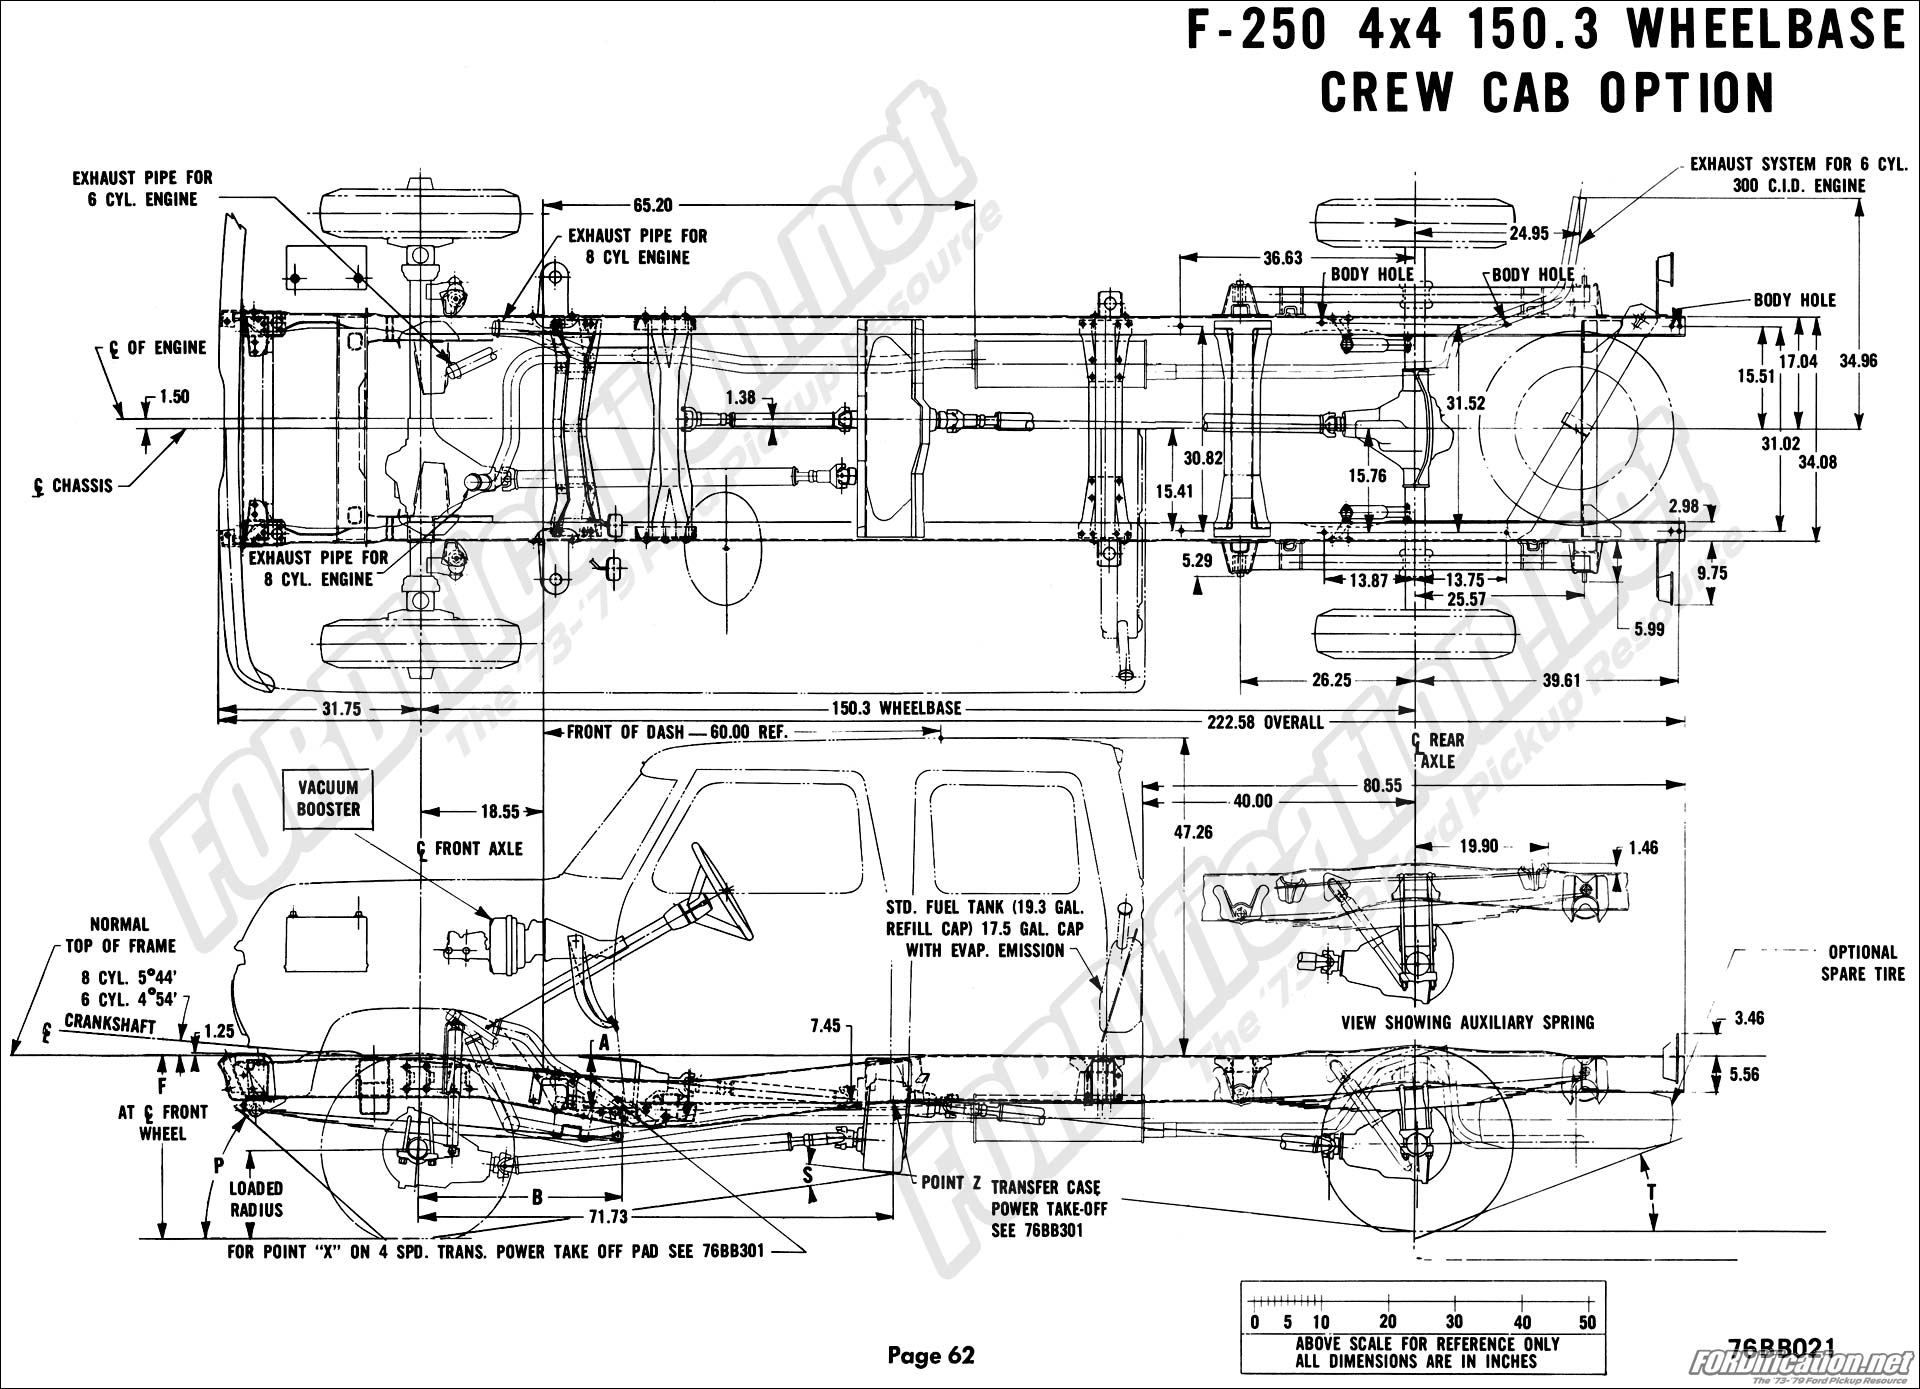 2002 Ford Ranger Frame Diagram Trusted Wiring Diagrams 1999 Transfer Case Complete U2022